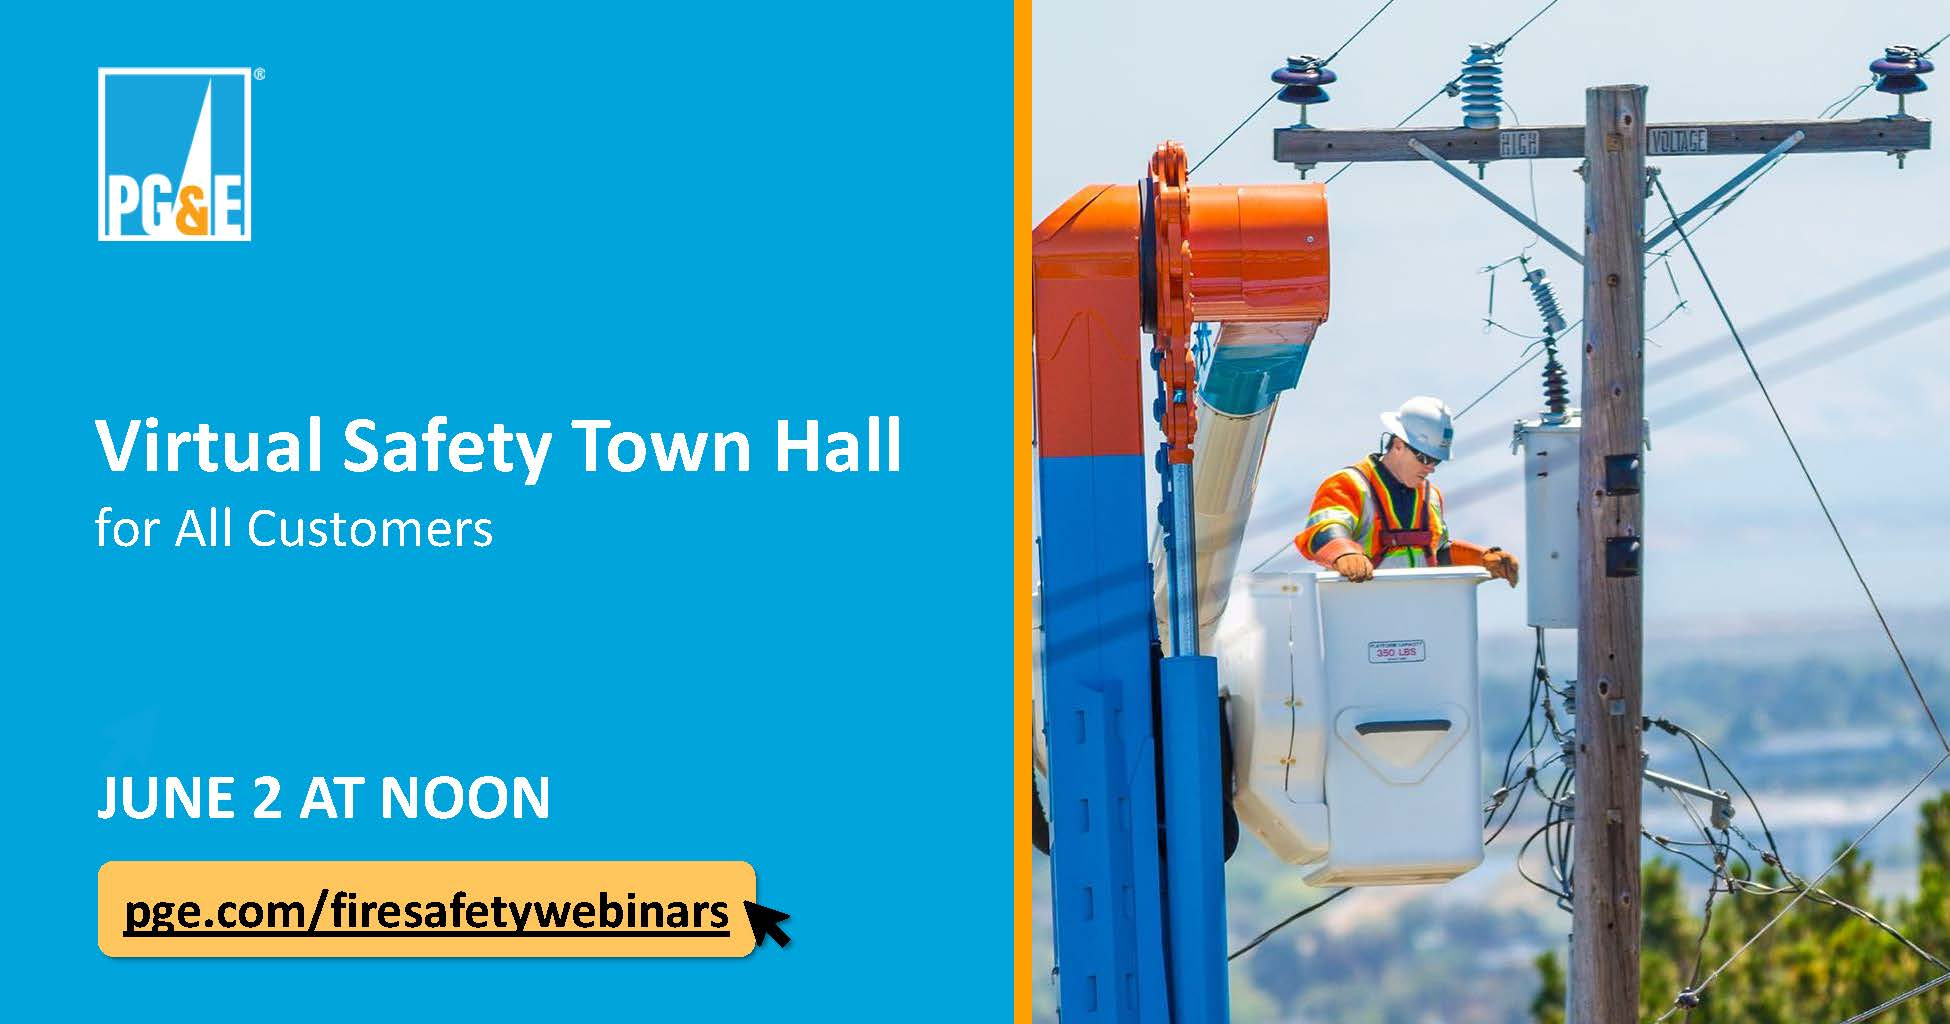 Virtual Safety Town Hall June 2nd